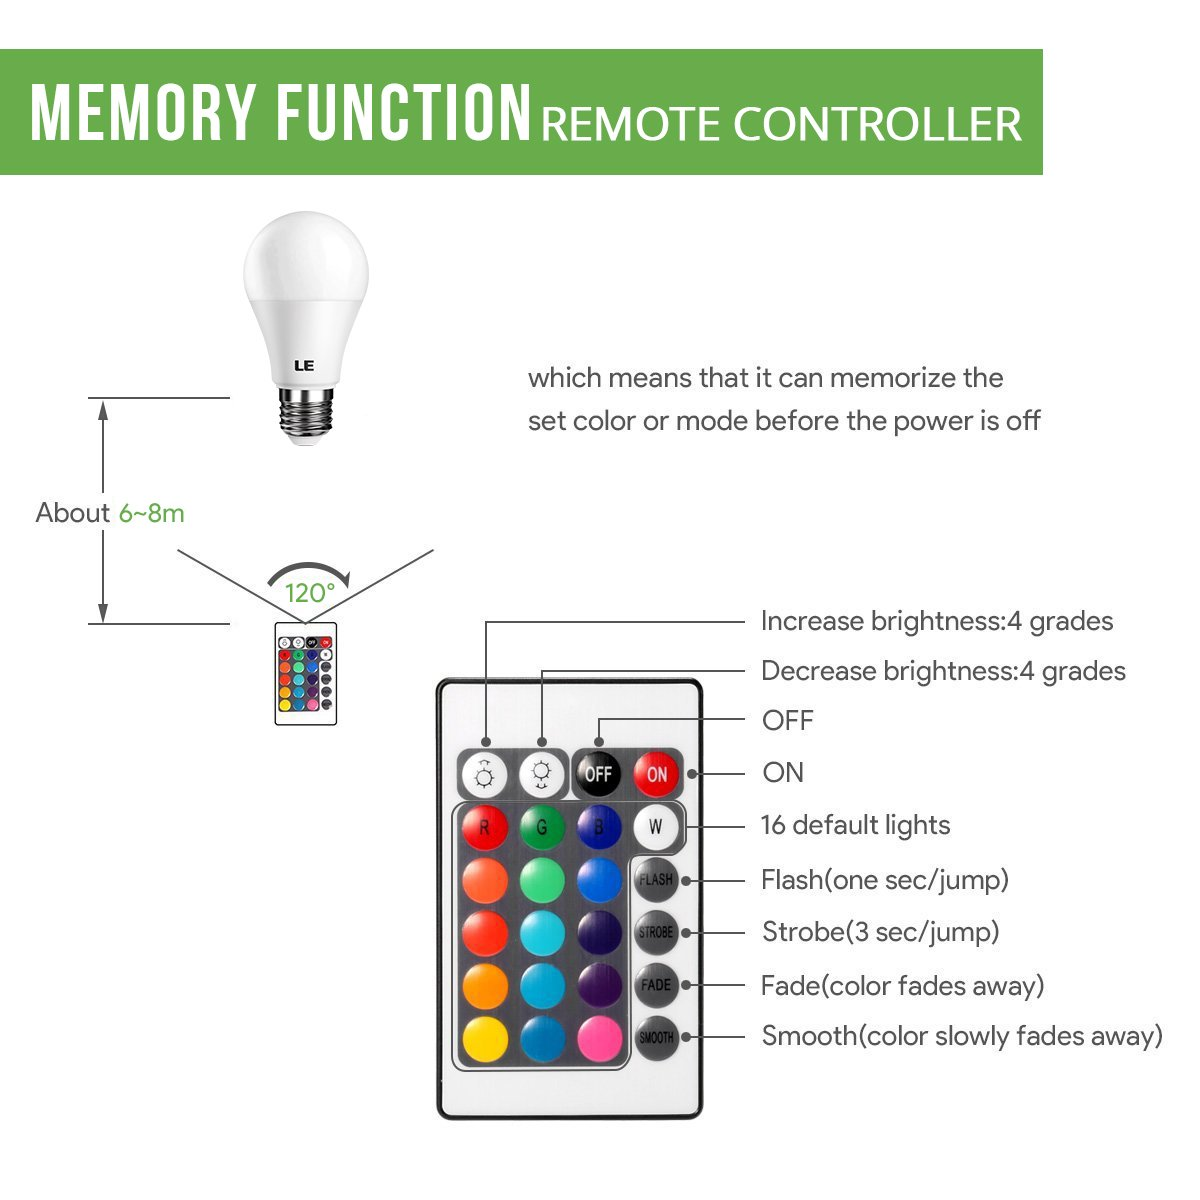 Color lines online strip game - Le Dimmable A19 E26 Led Light Bulb 6w Rgb 16 Colors Remote Controller Included Led Household Light Bulbs Amazon Com